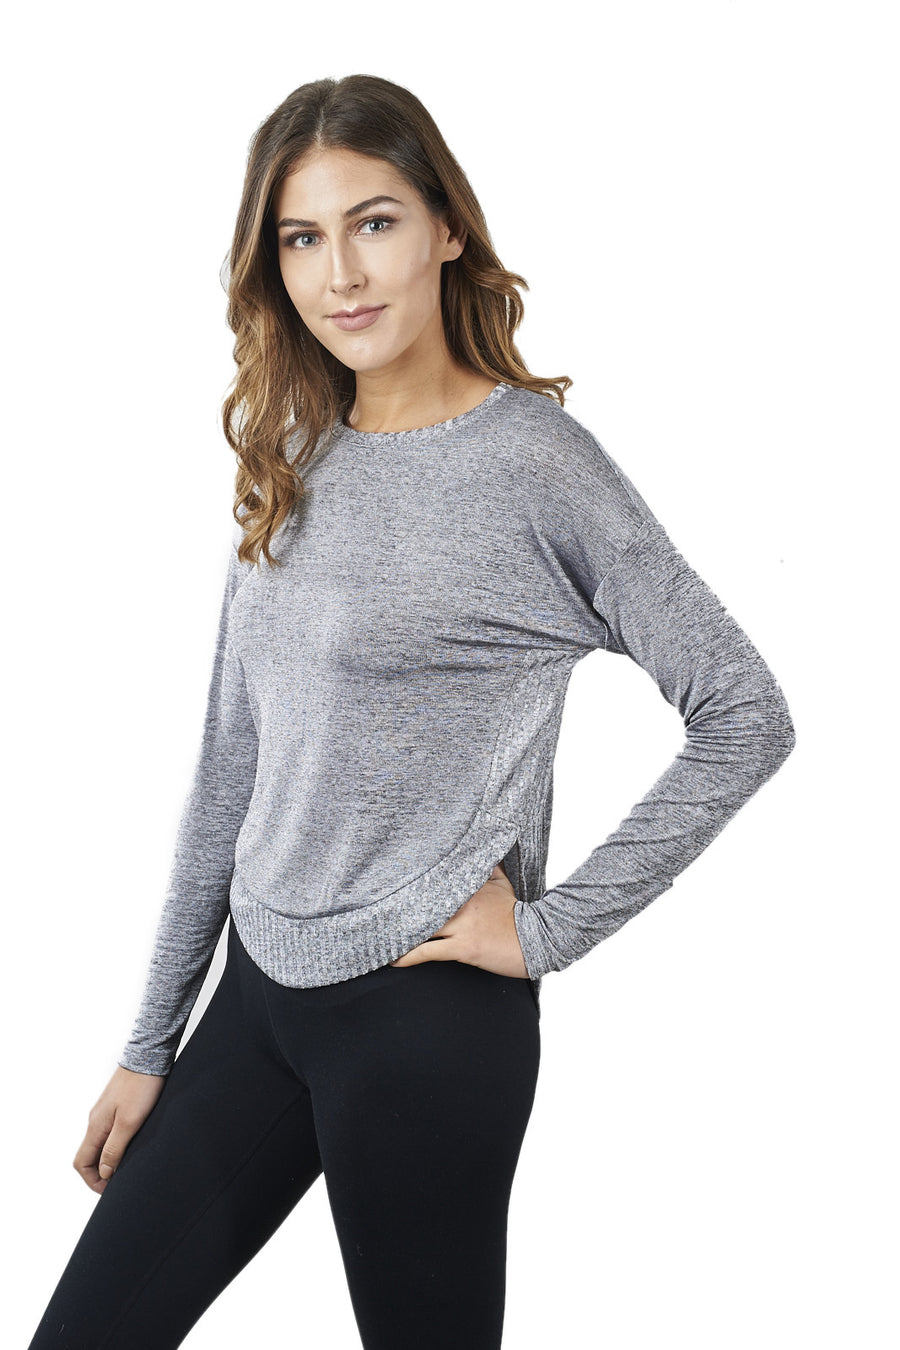 Silver Marbled Sweater Top